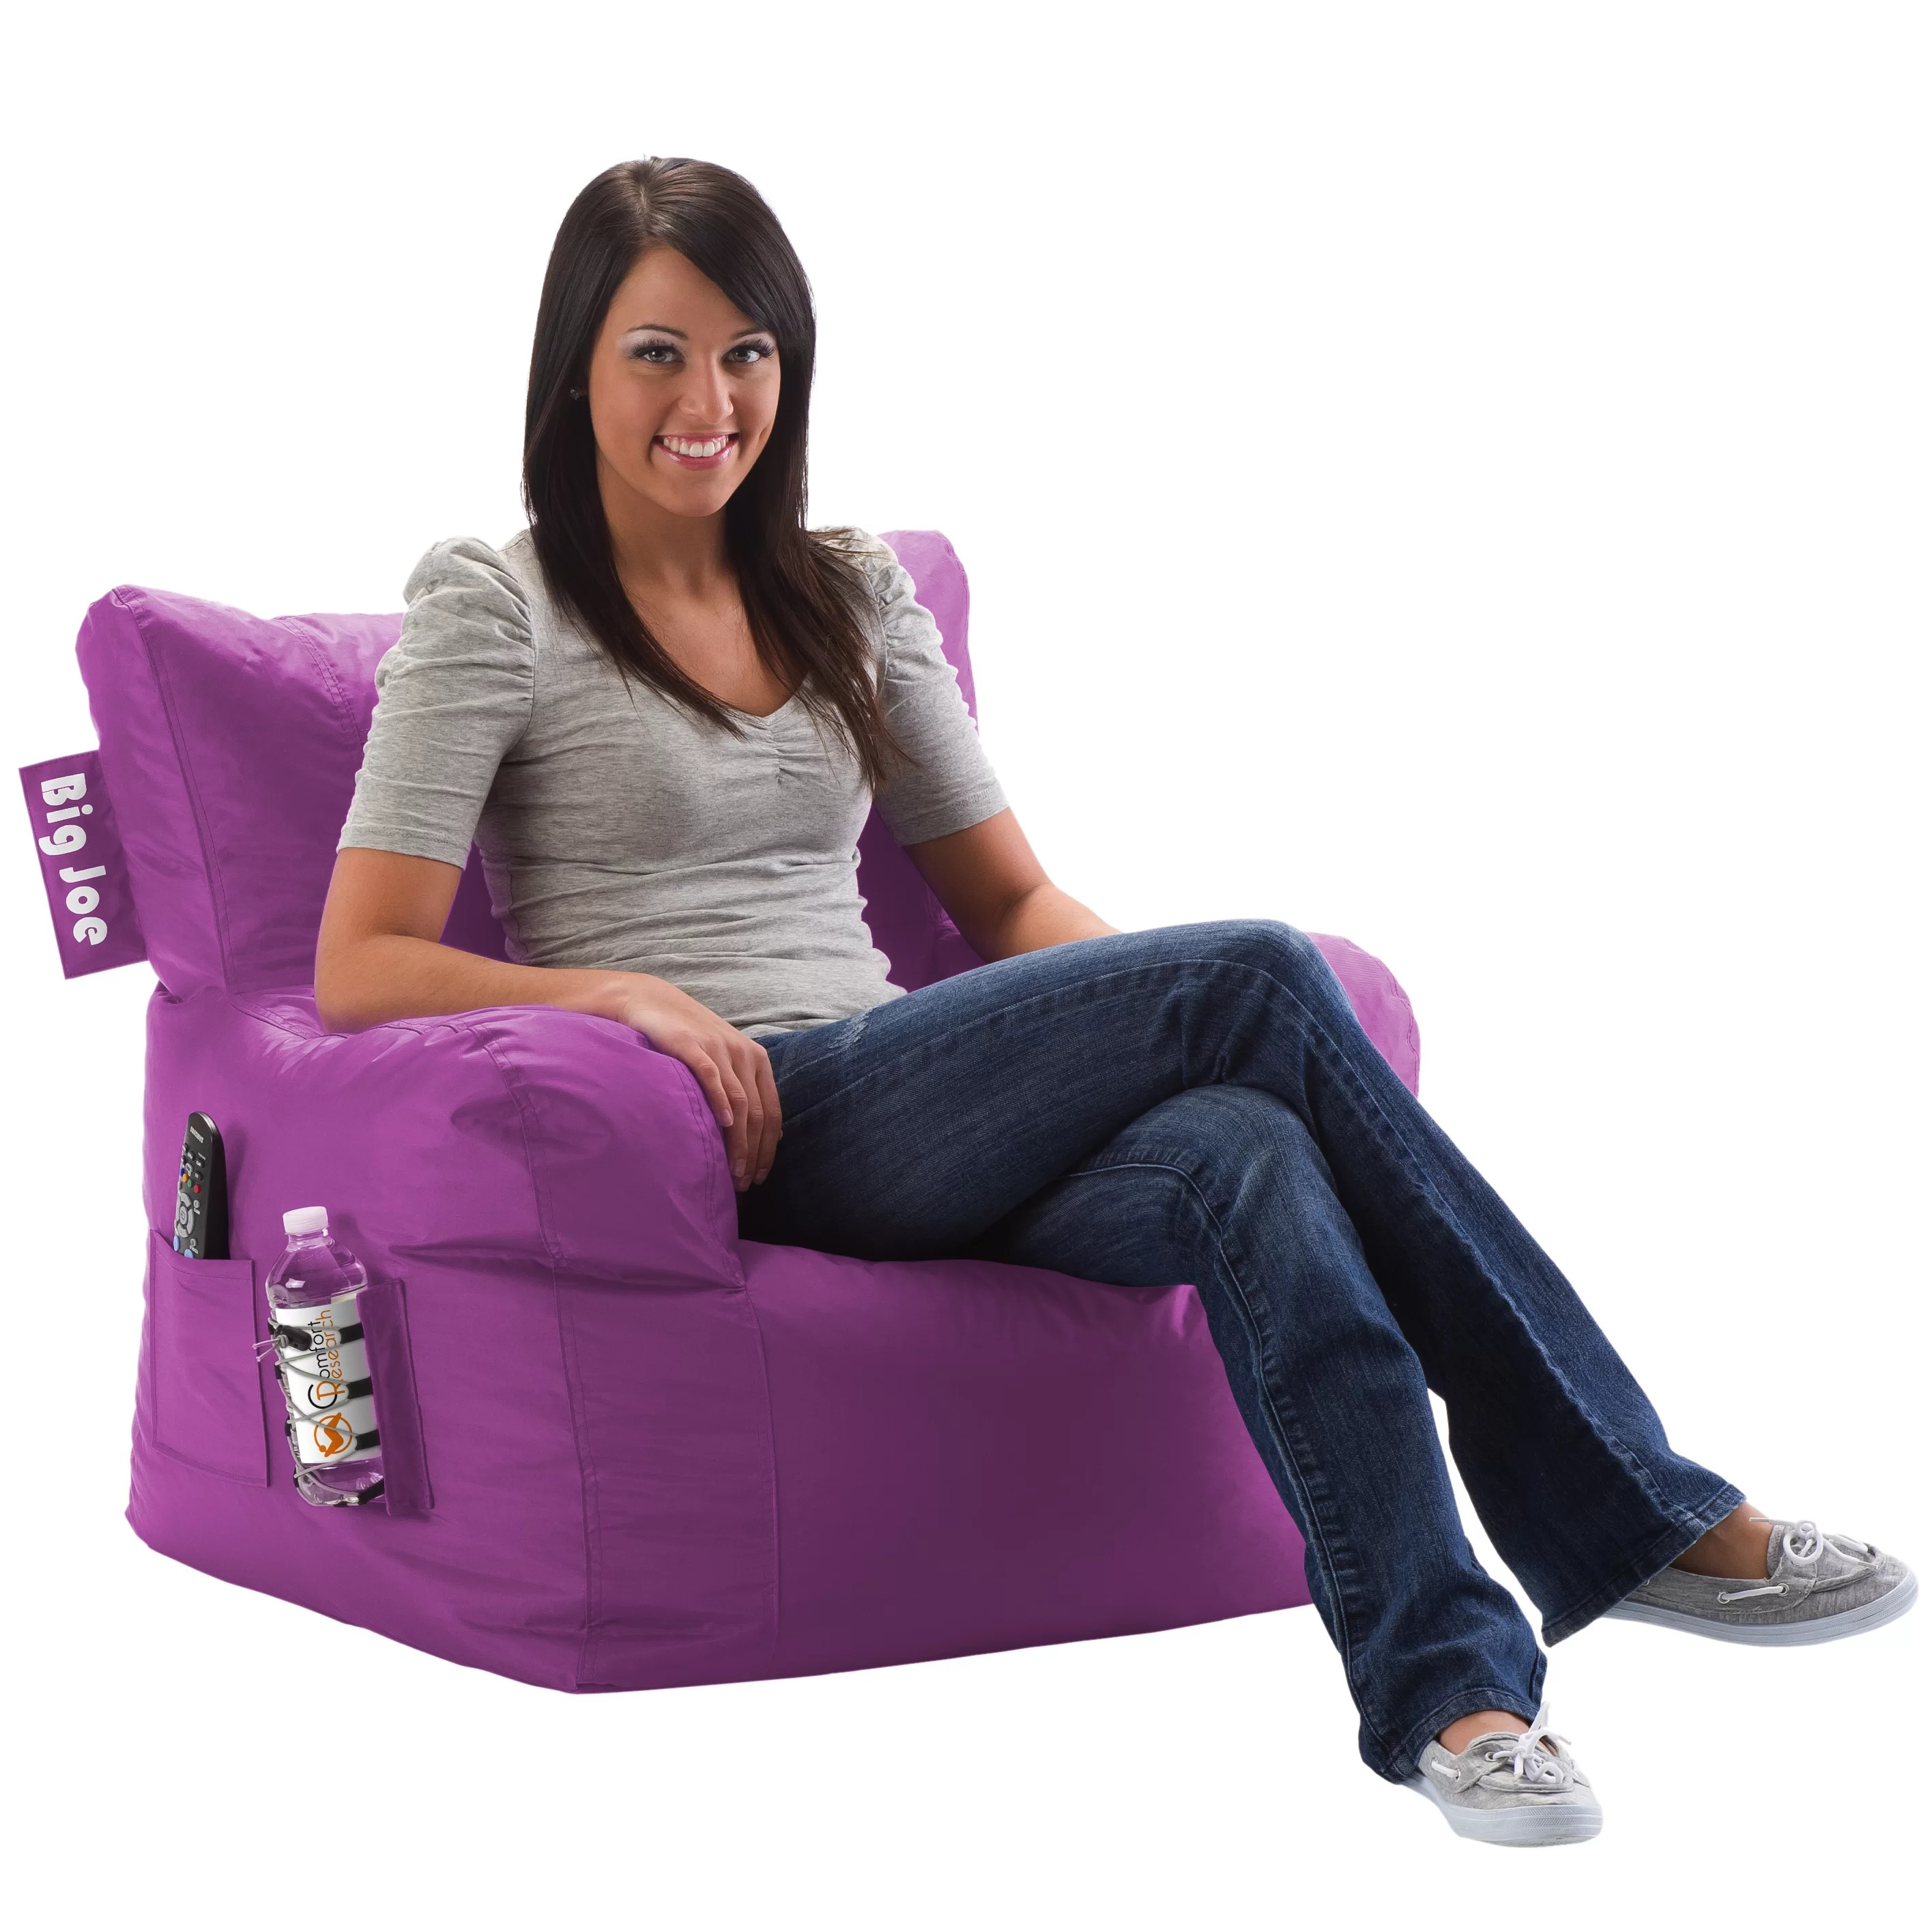 Bean Bags Chair Comfort Research Big Joe Bean Bag Chair And Reviews Wayfair